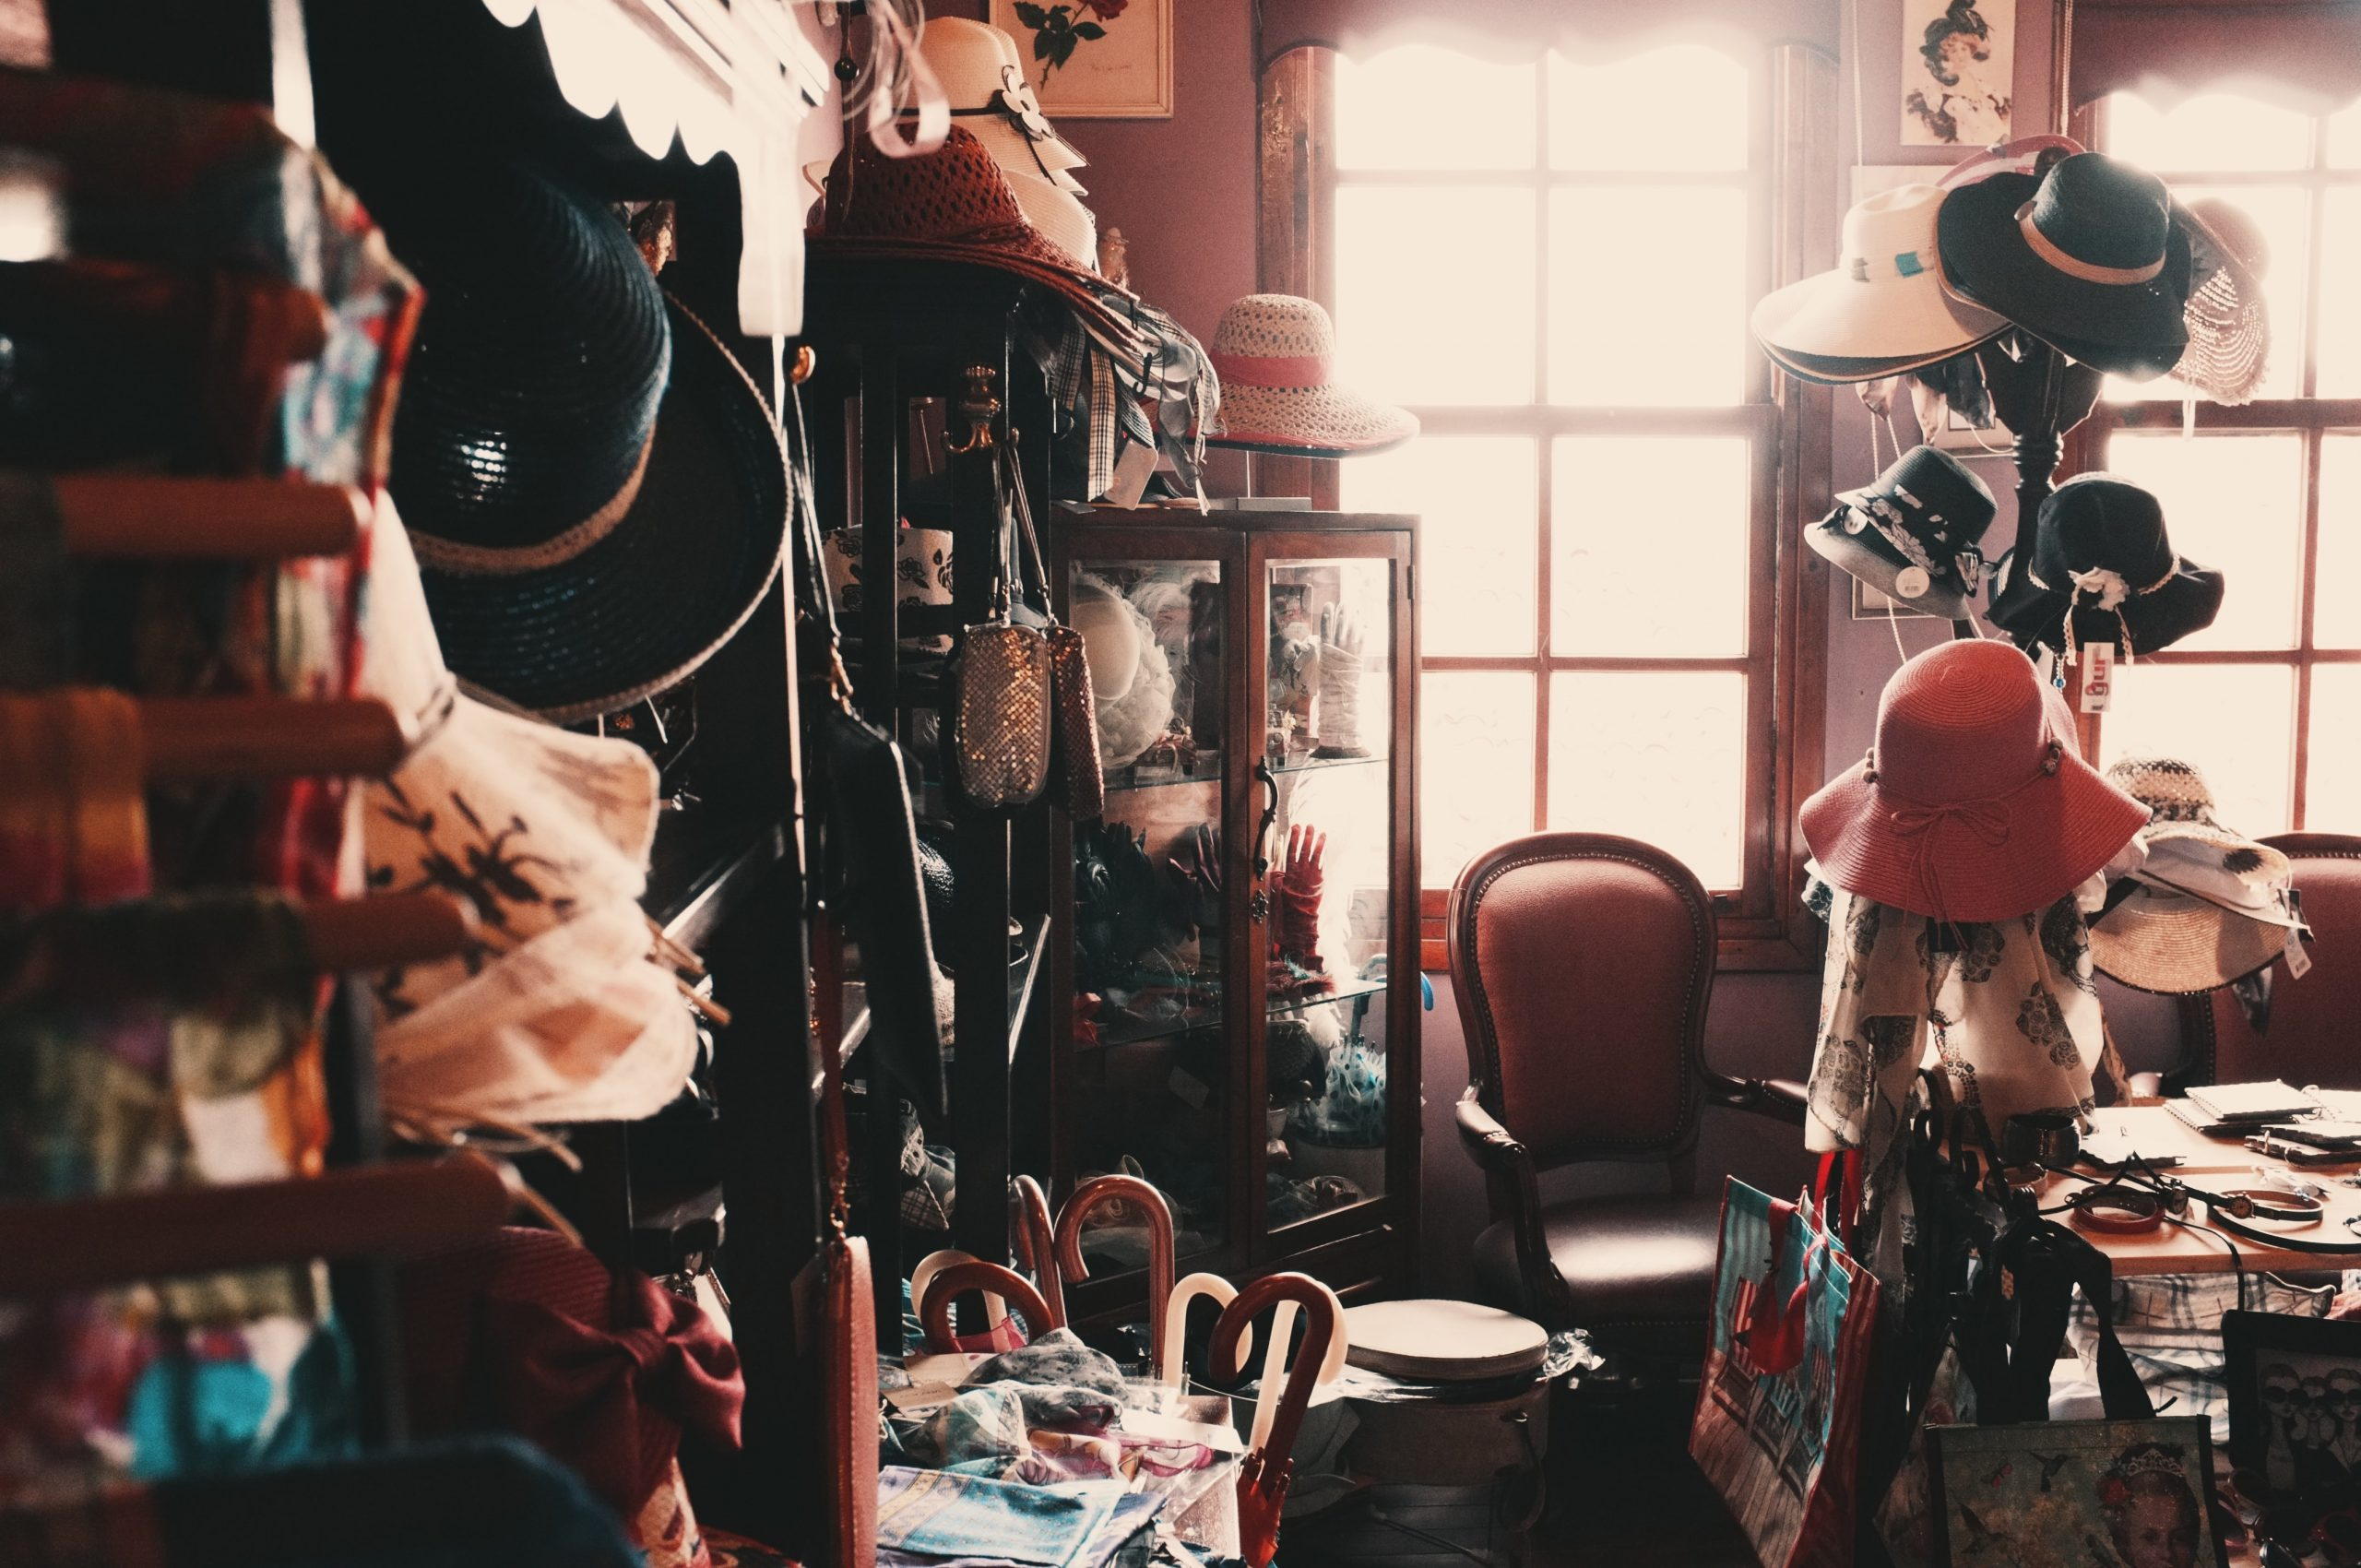 Messy room in house